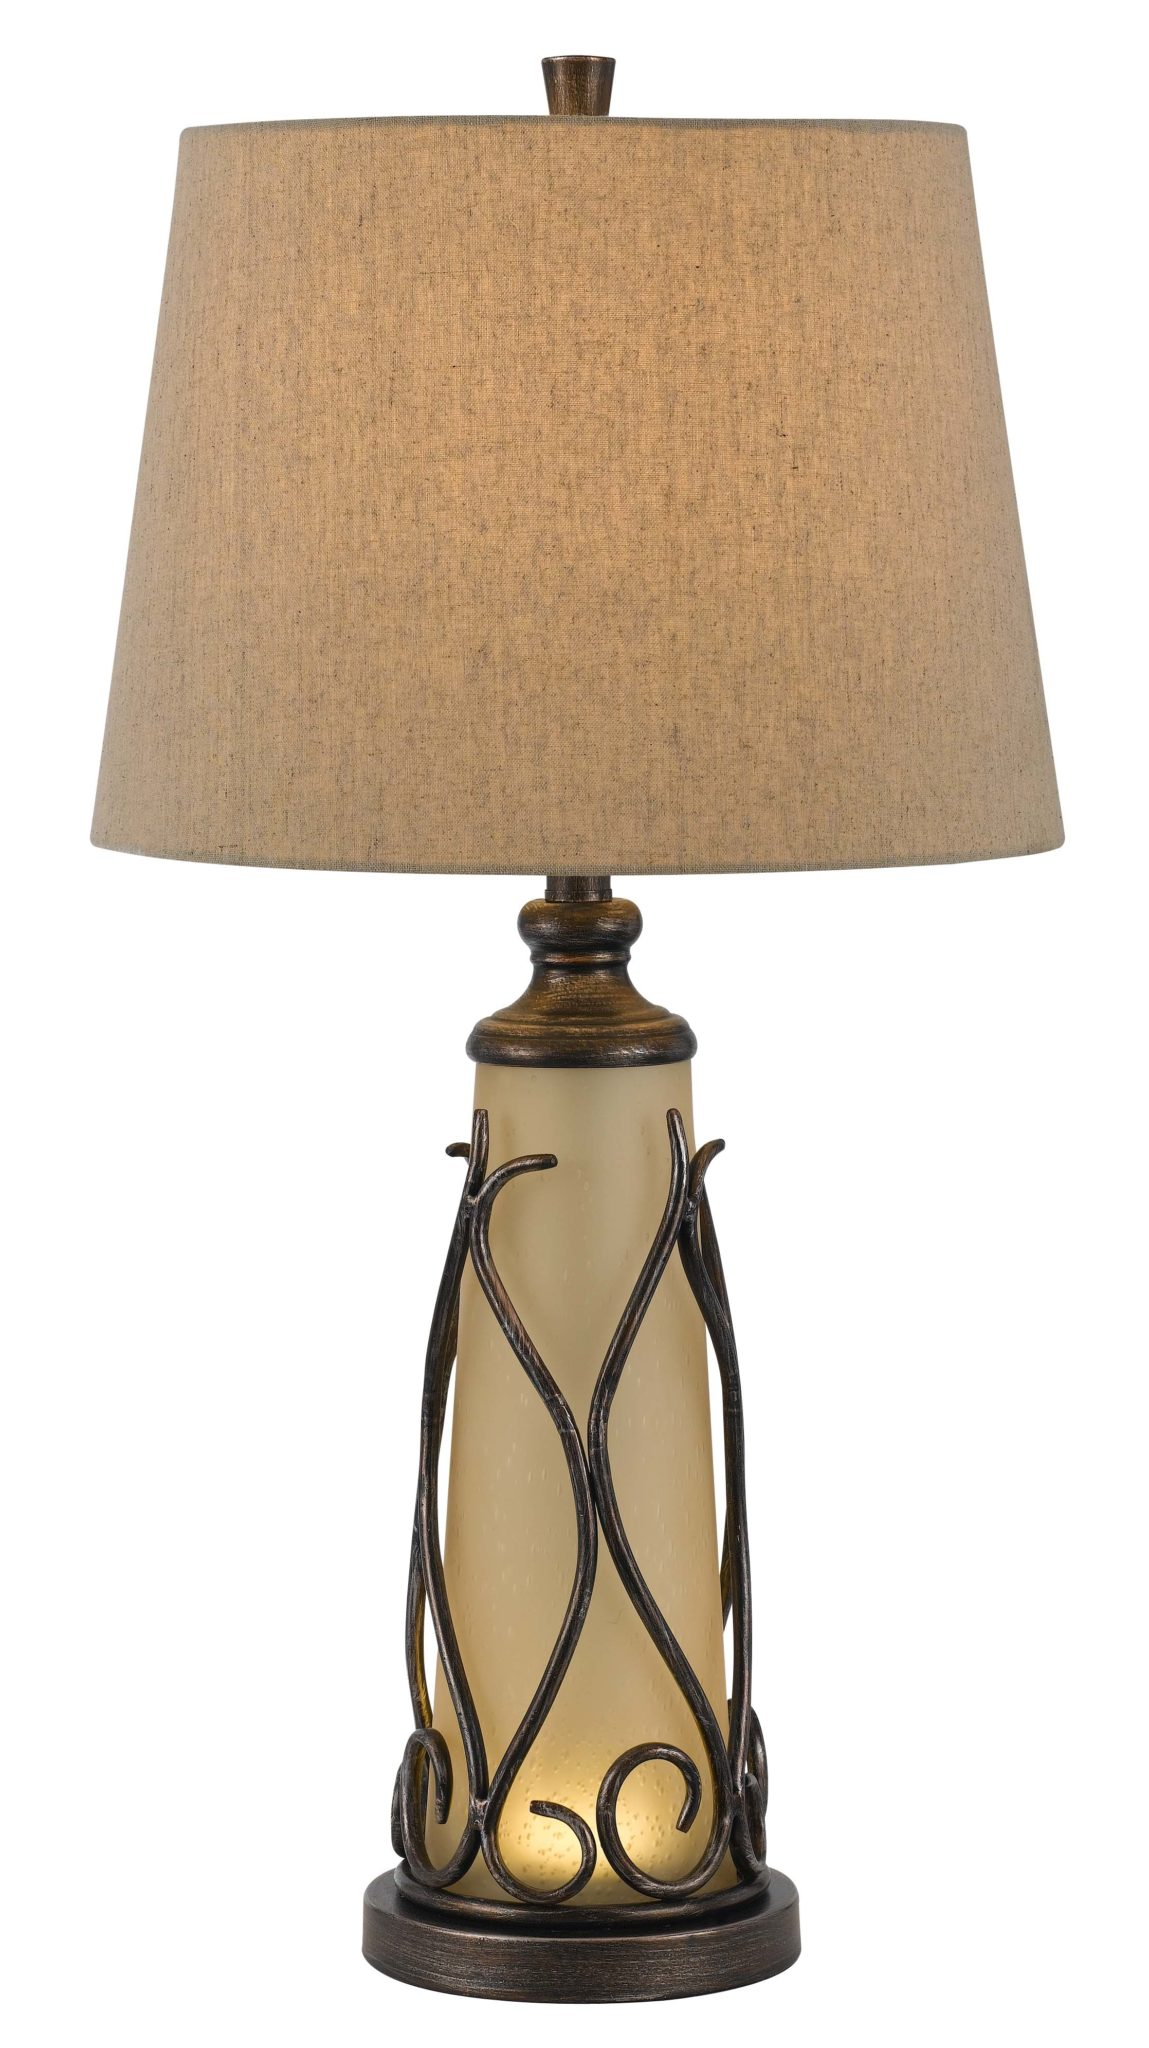 Taylor Table Lamp With 1 Watt Led